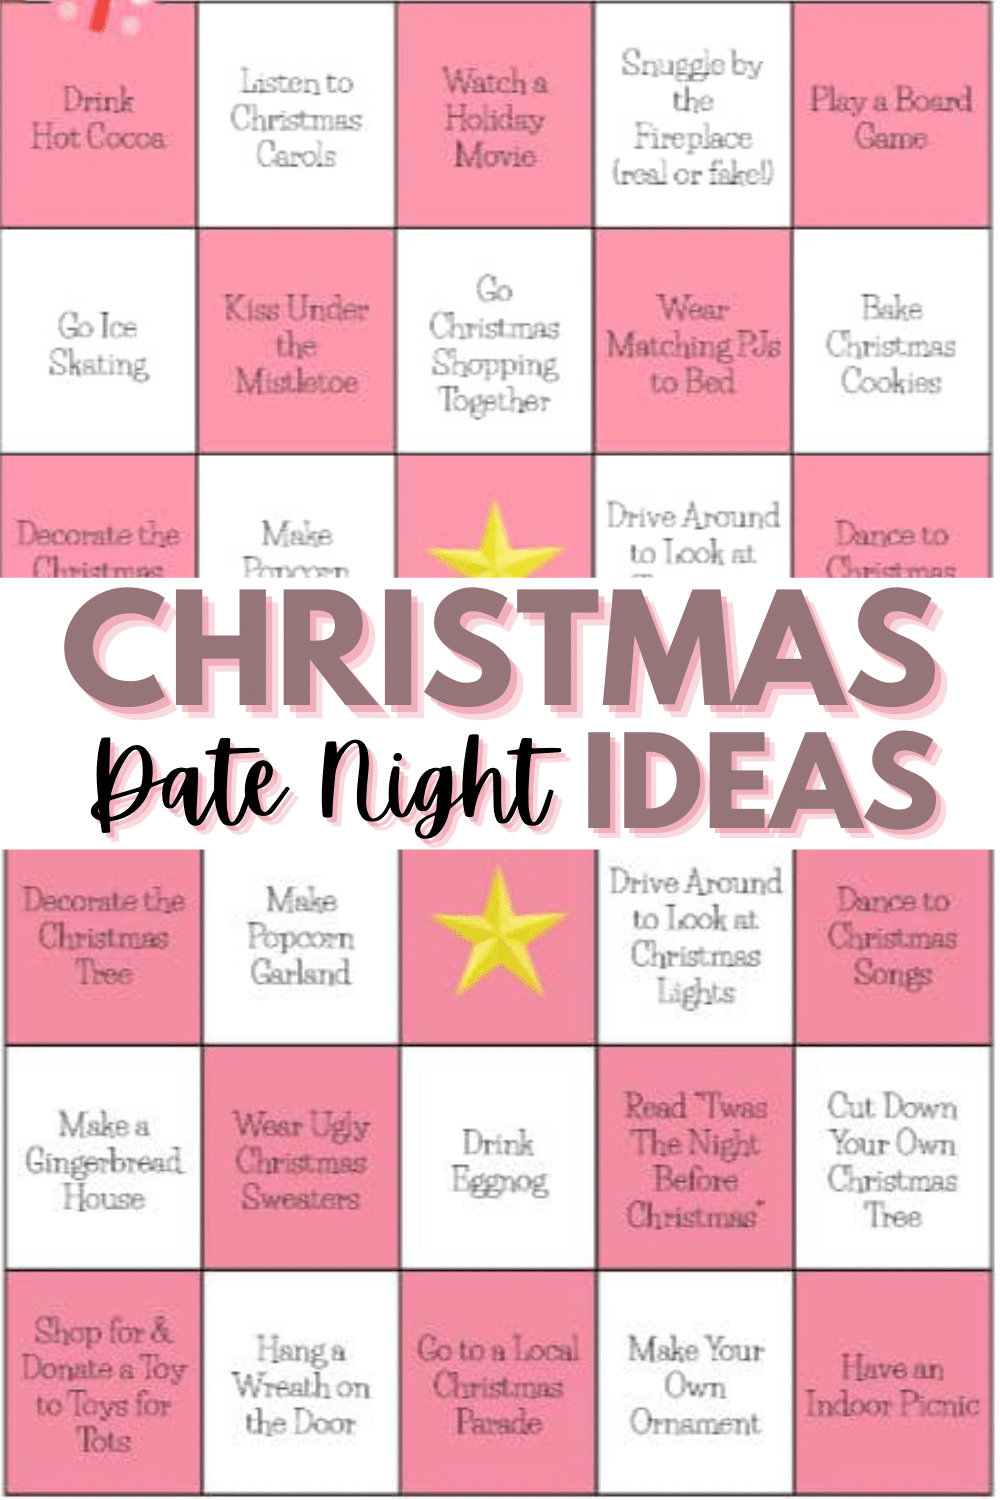 Finding unique Christmas Date Ideas is easy with this fun bingo-style printable. It is worth it to make time for your relationship during the holidays. #christmasdates #printables #christmasprintables via @wondermomwannab